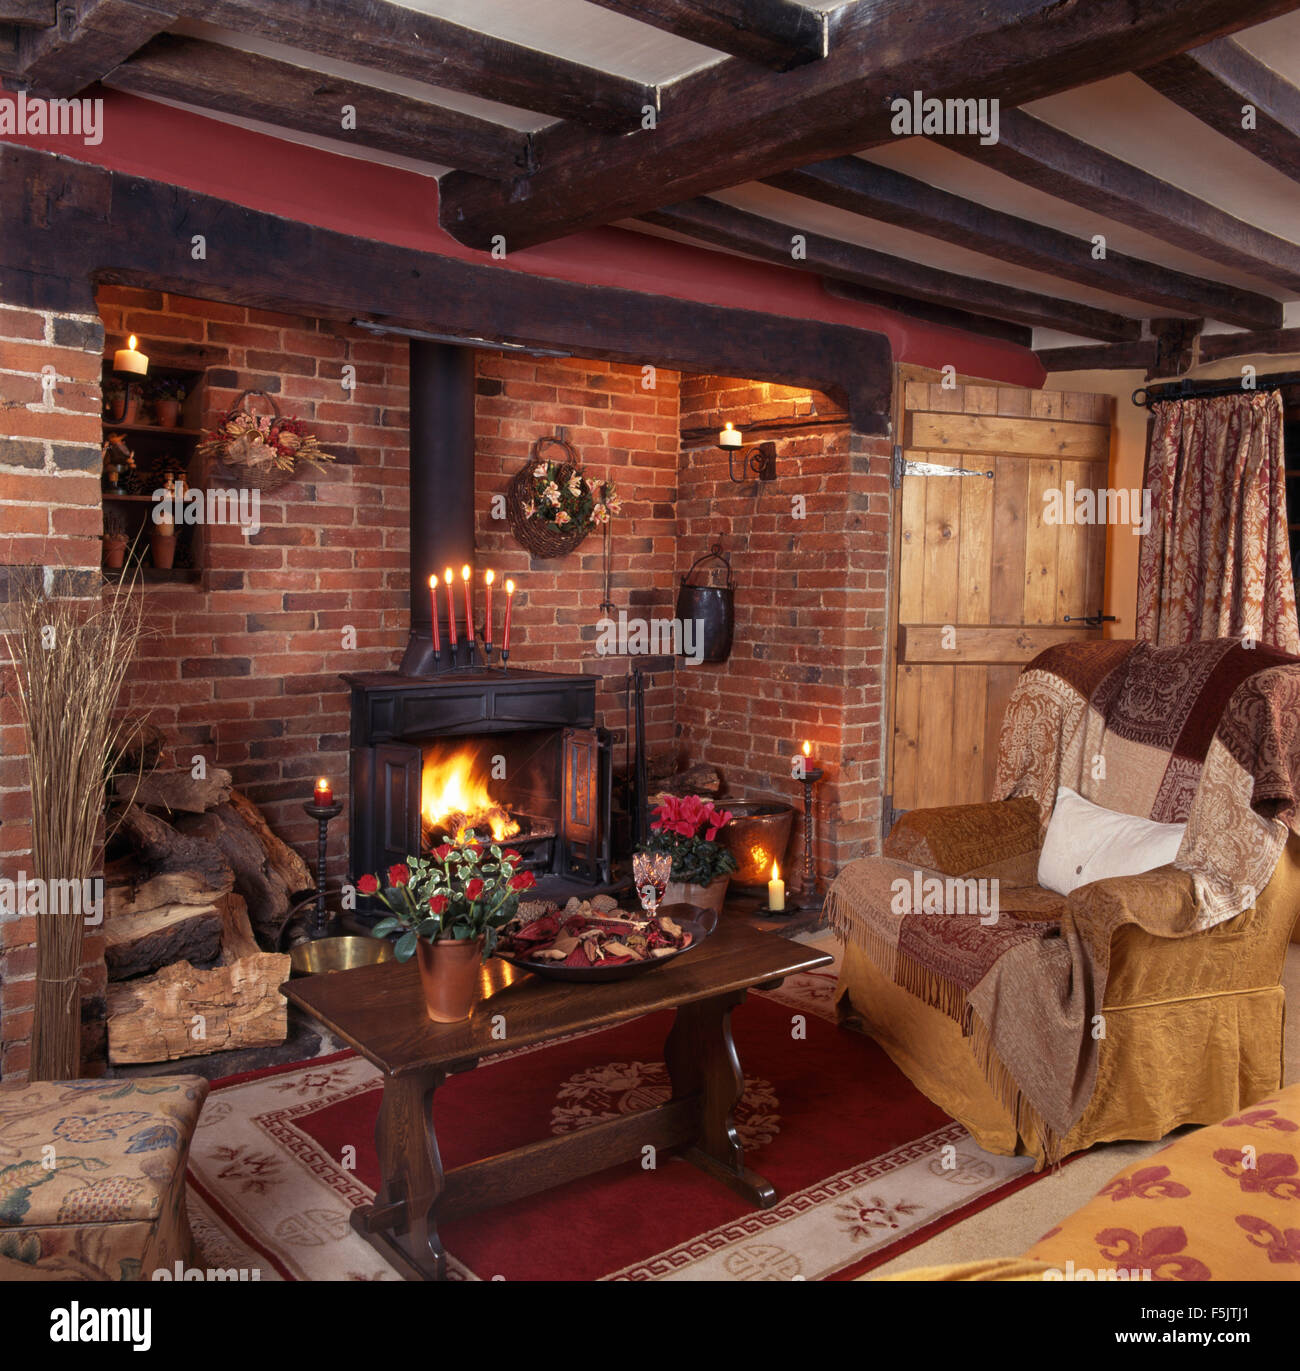 Wood burning stove in inglenook fireplace Stock Photo, Royalty ...